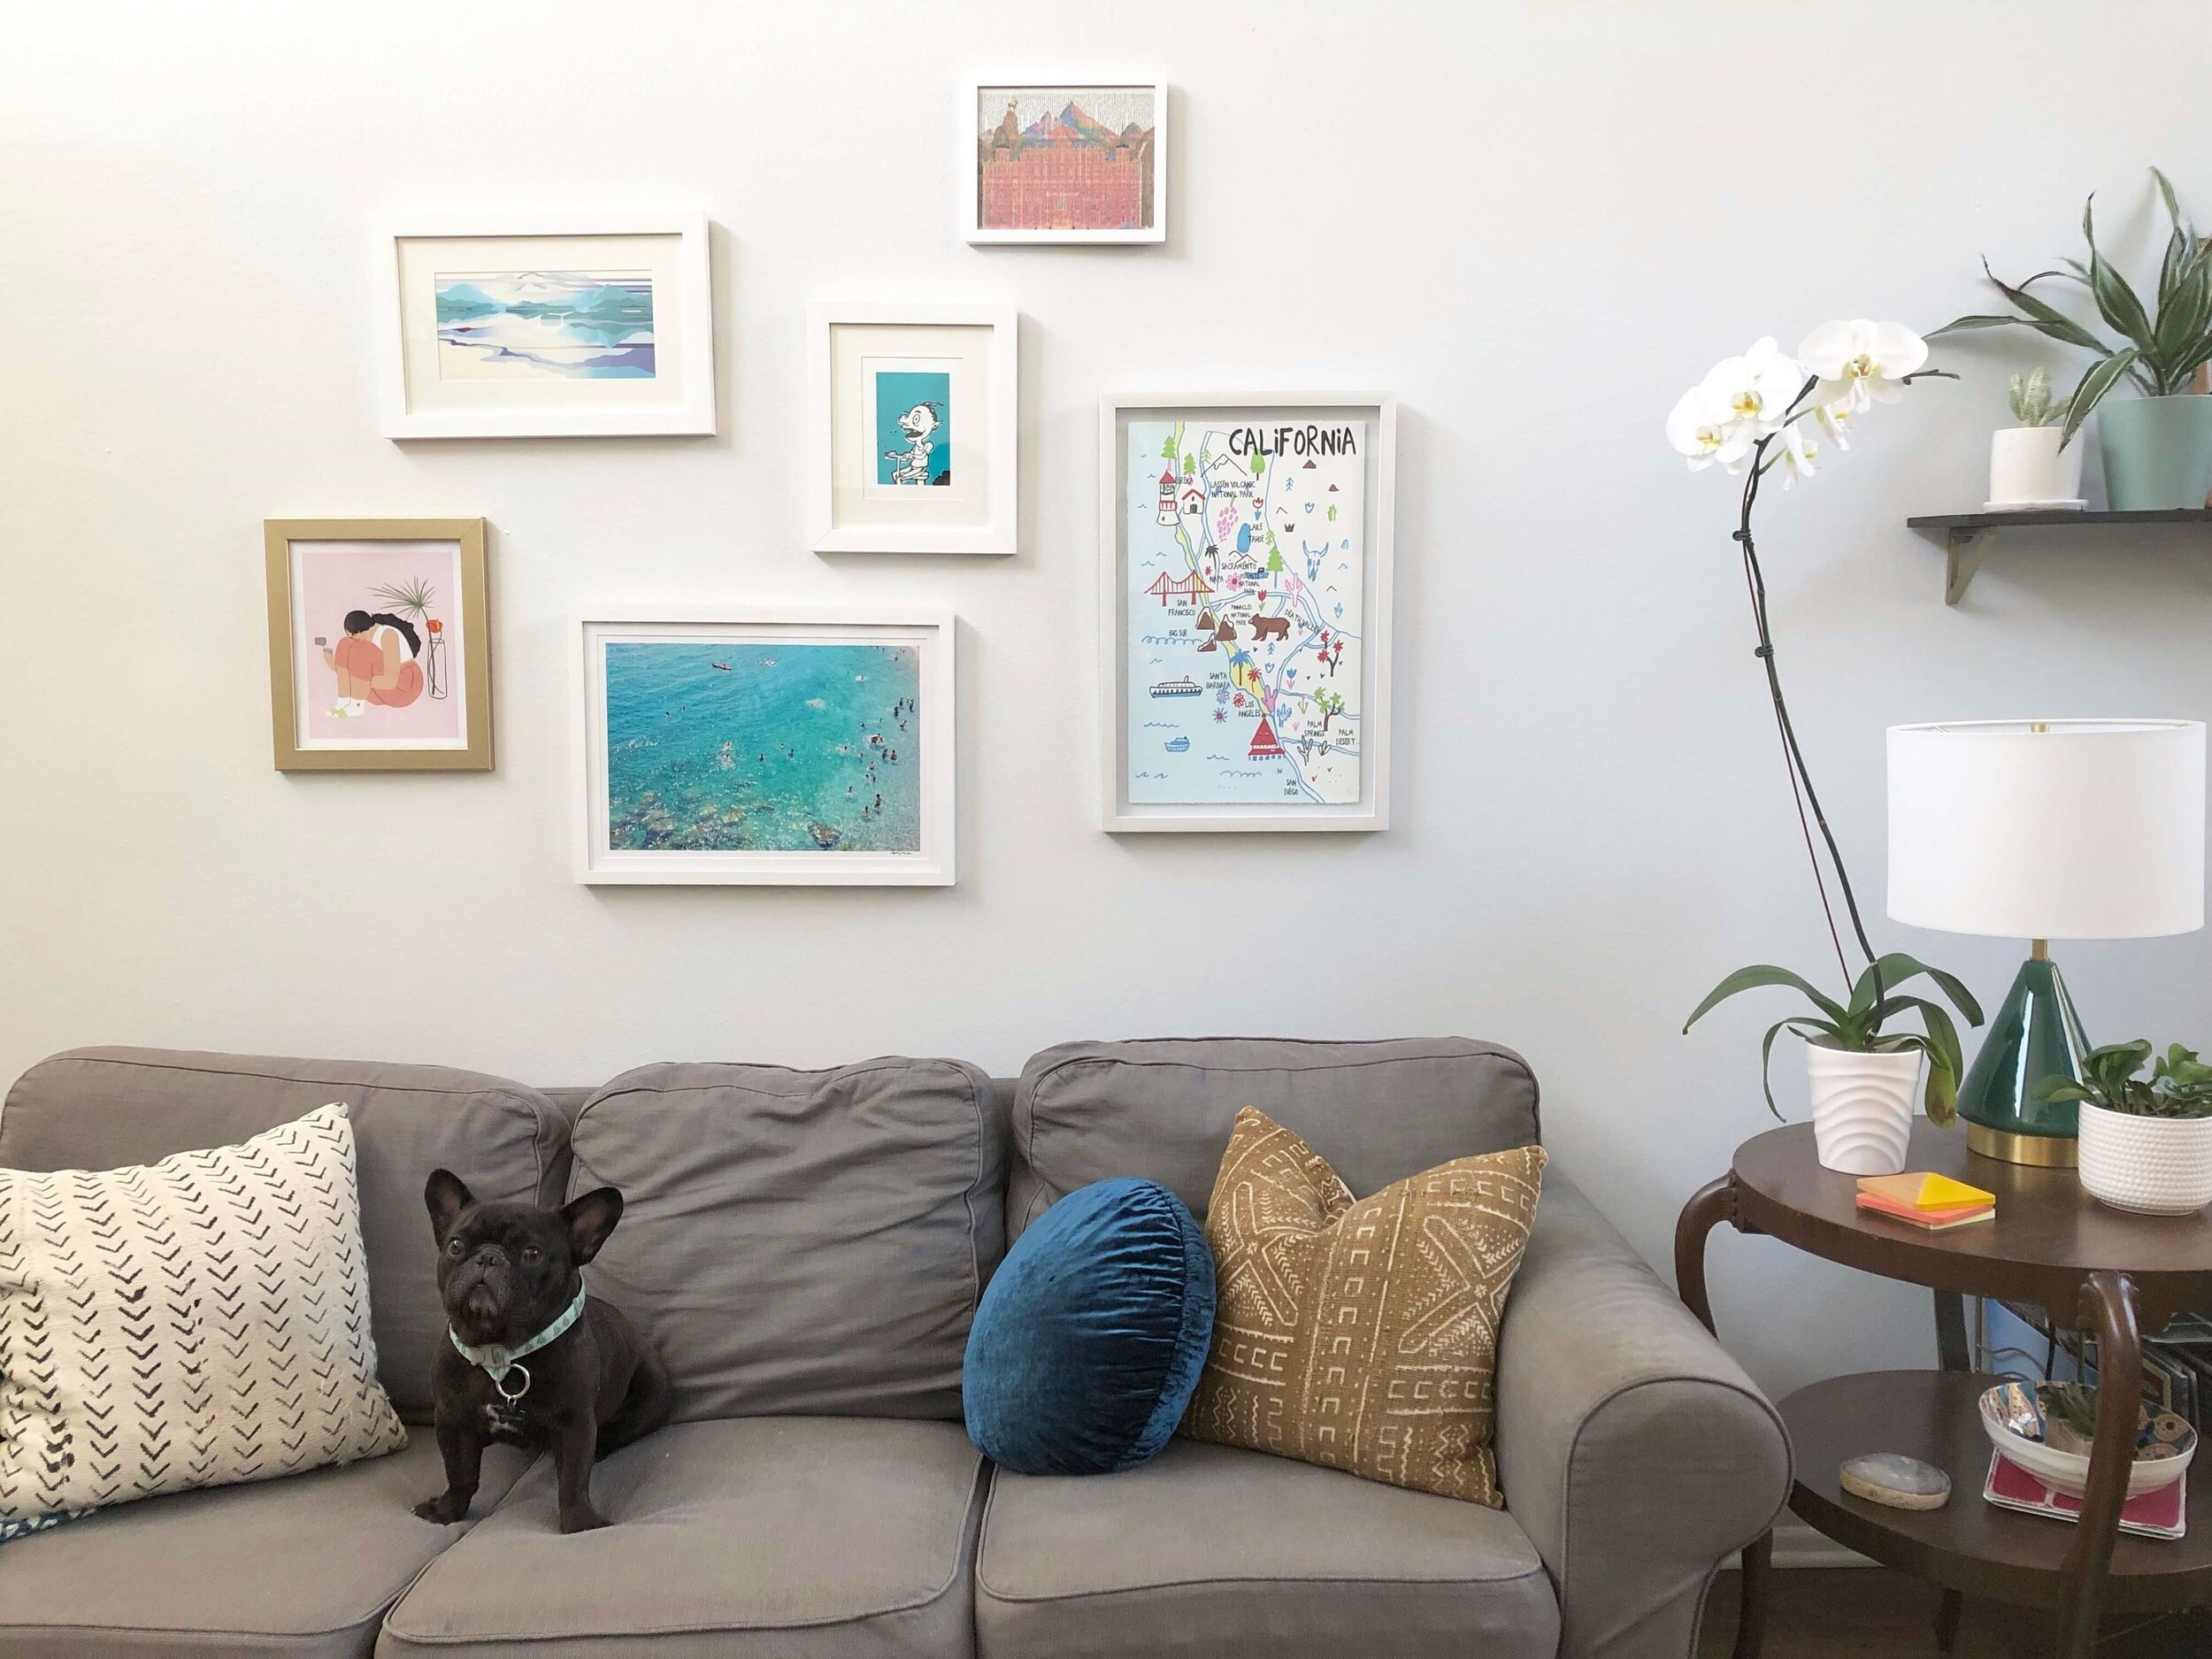 Small gallery wall in my daughter's apartment with pieces from her and her roommate combined over an IKEA Ektorp sofa and vintage side table. #modernboho #bohemian